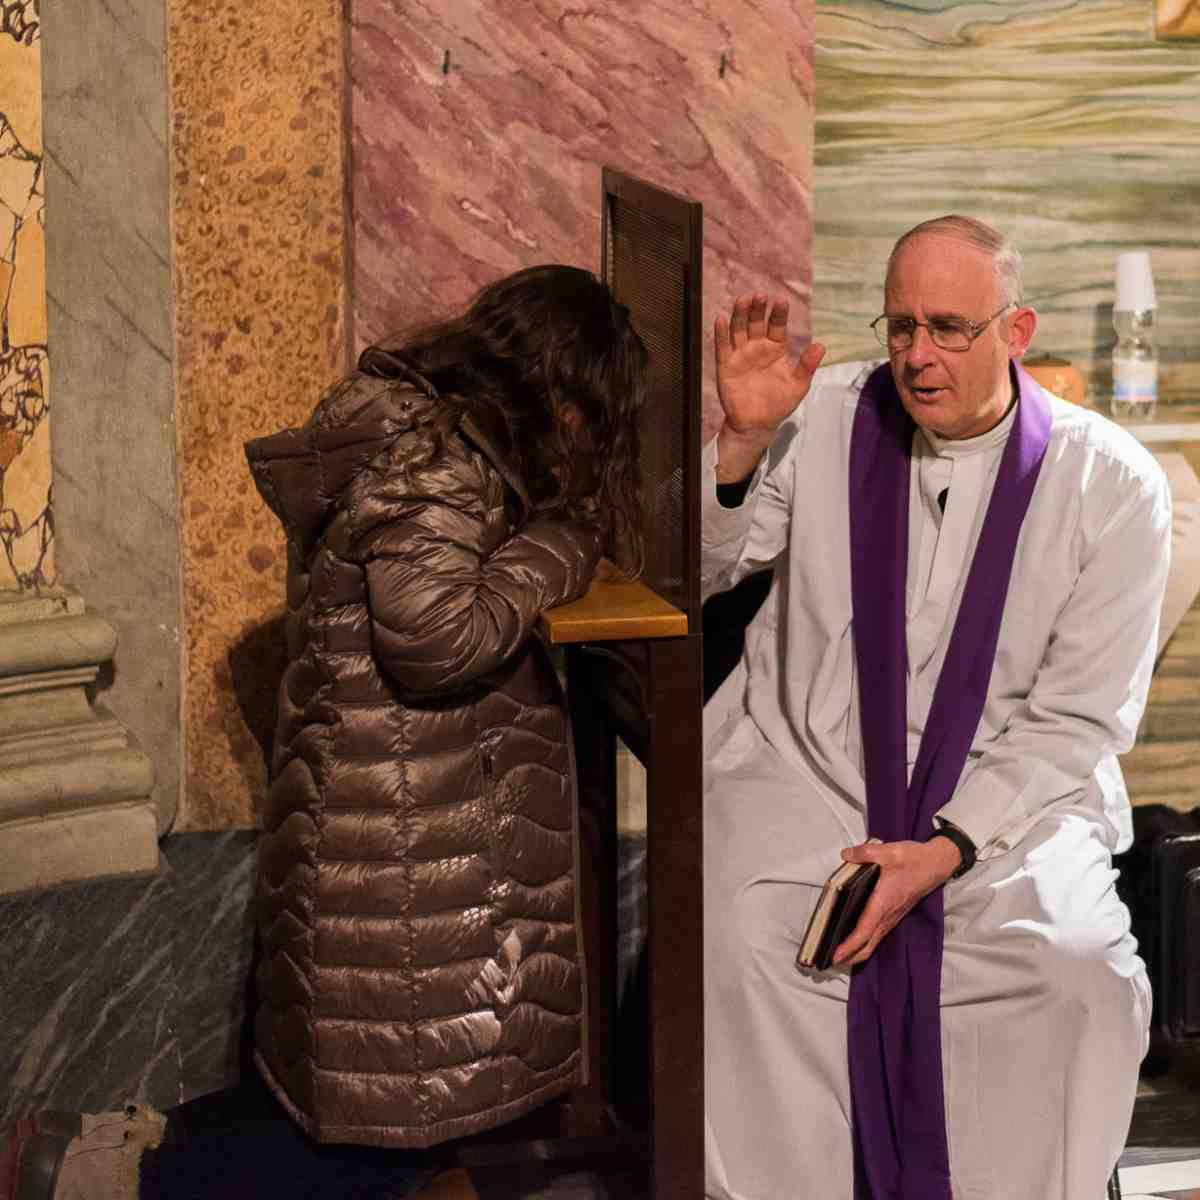 A priest hears a confession in Rome. The Catholic priest is the living example of God's love in our lives.